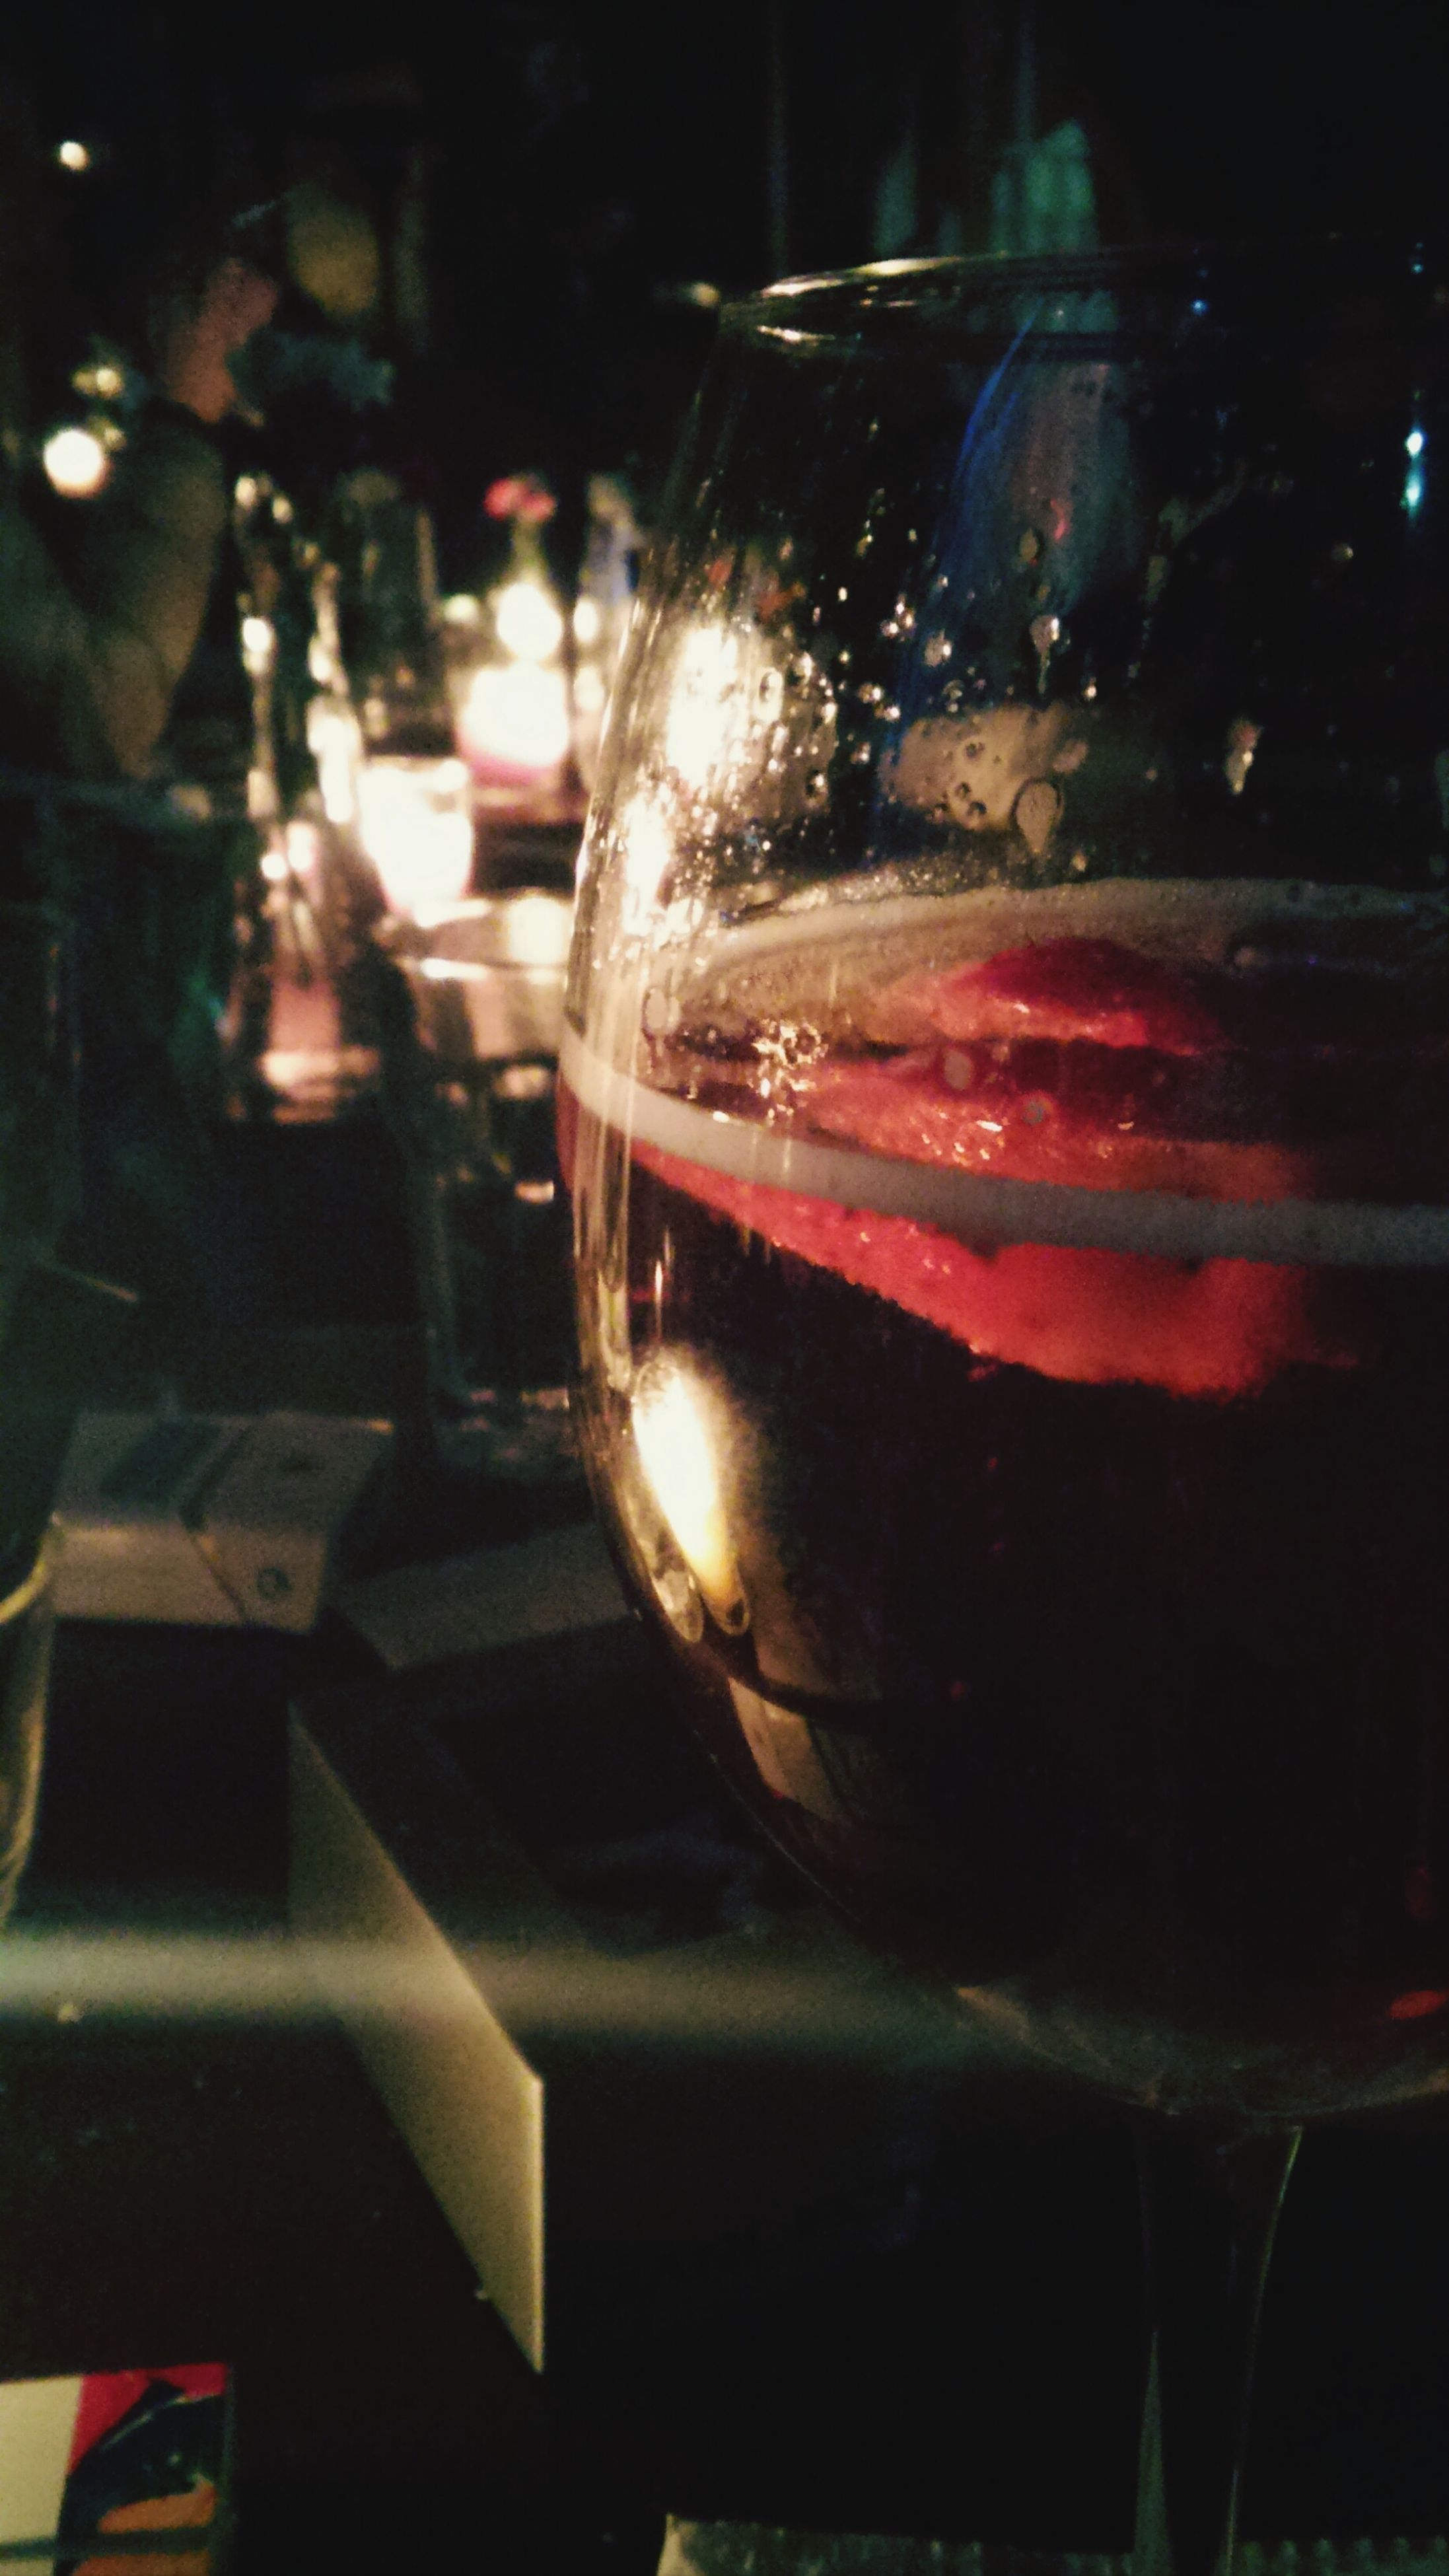 drink, food and drink, drinking glass, refreshment, glass - material, close-up, transparent, indoors, focus on foreground, alcohol, illuminated, night, freshness, table, restaurant, wineglass, still life, glass, cocktail, no people